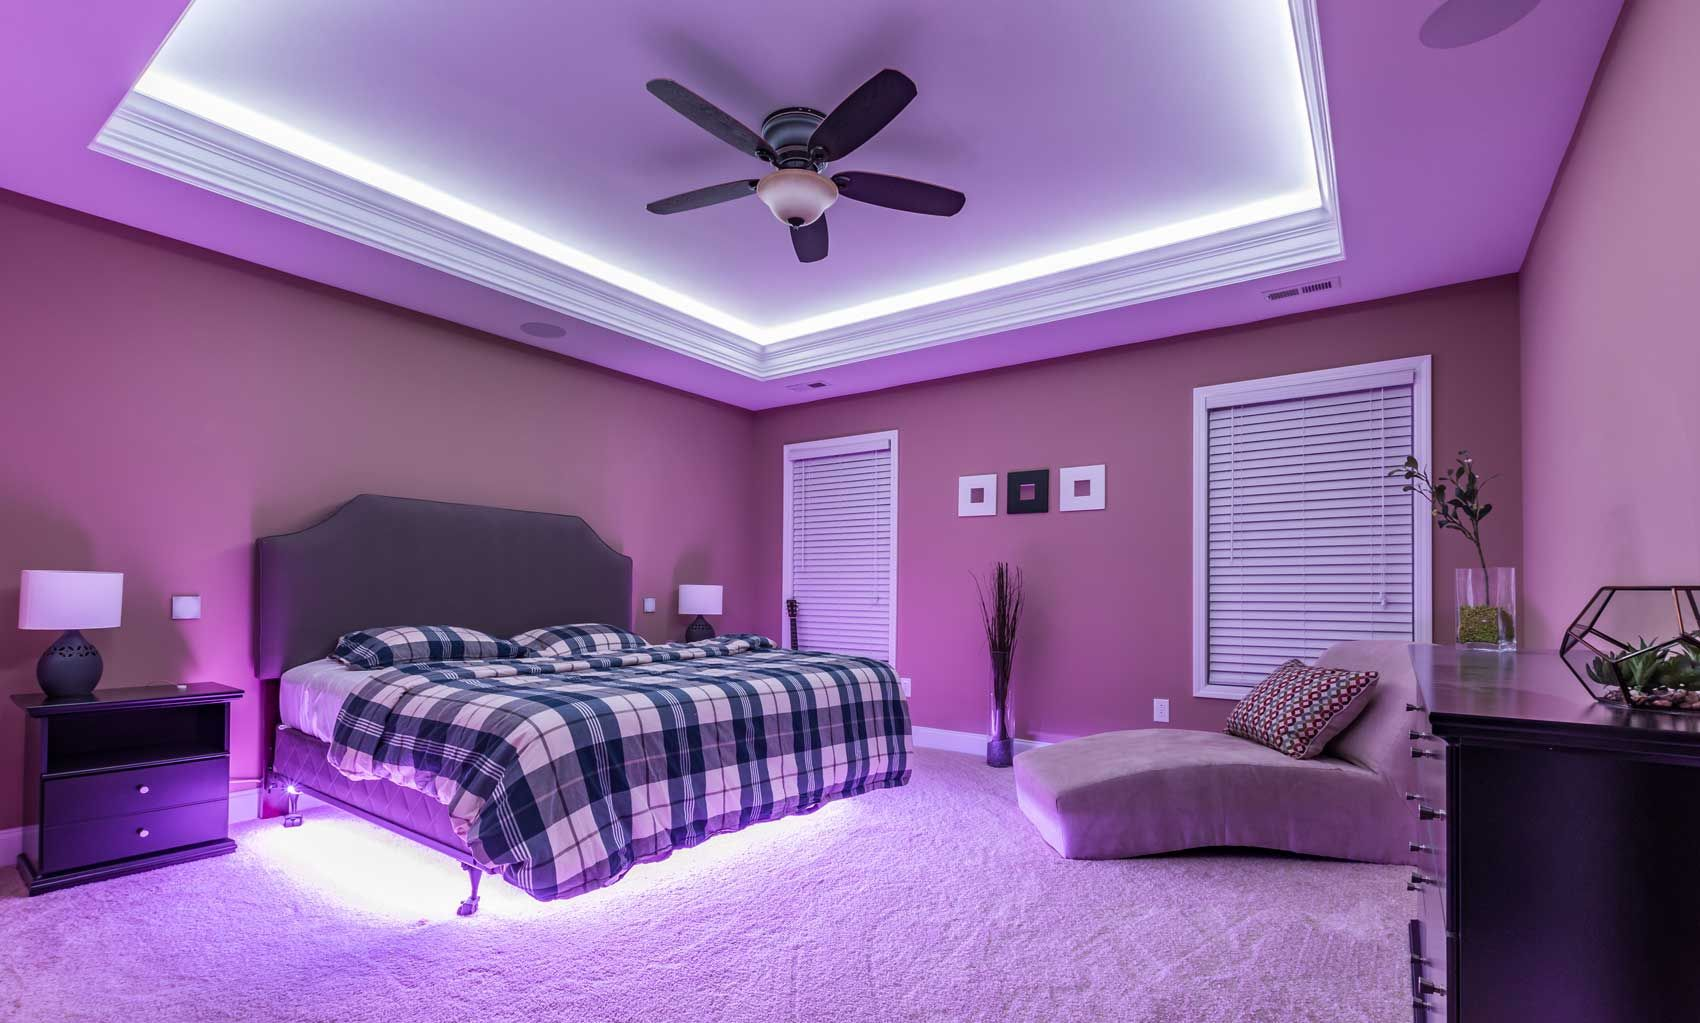 Ambient Lighting Utilize Led Lights To Set The Mood Of Your Smart Home Led Lighting Bedroom Led Strip Lighting Bedroom Lighting